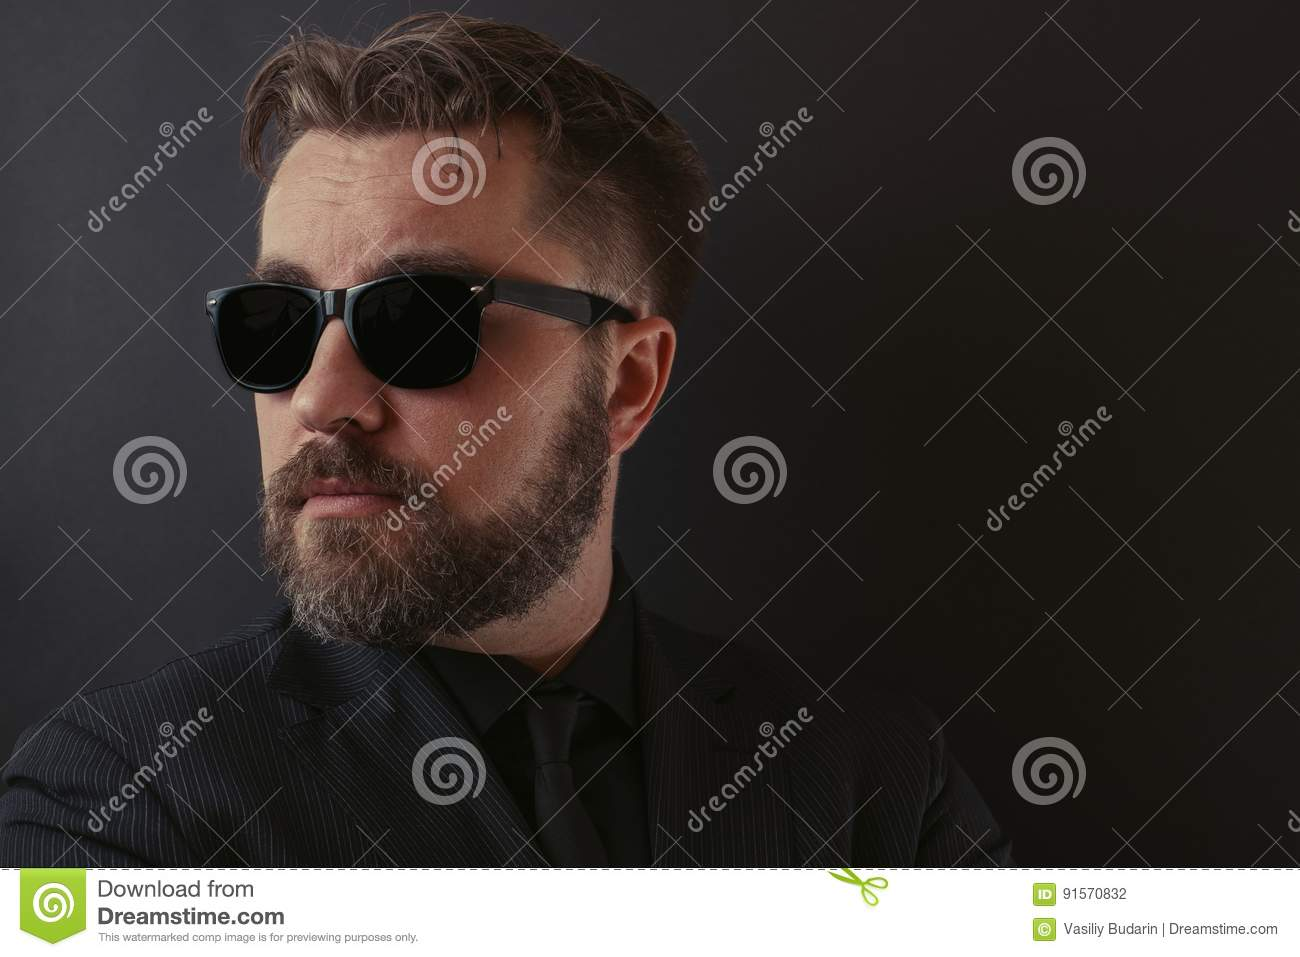 A brutal man with a beard and a stylish hairdo in a black suit and sunglasses